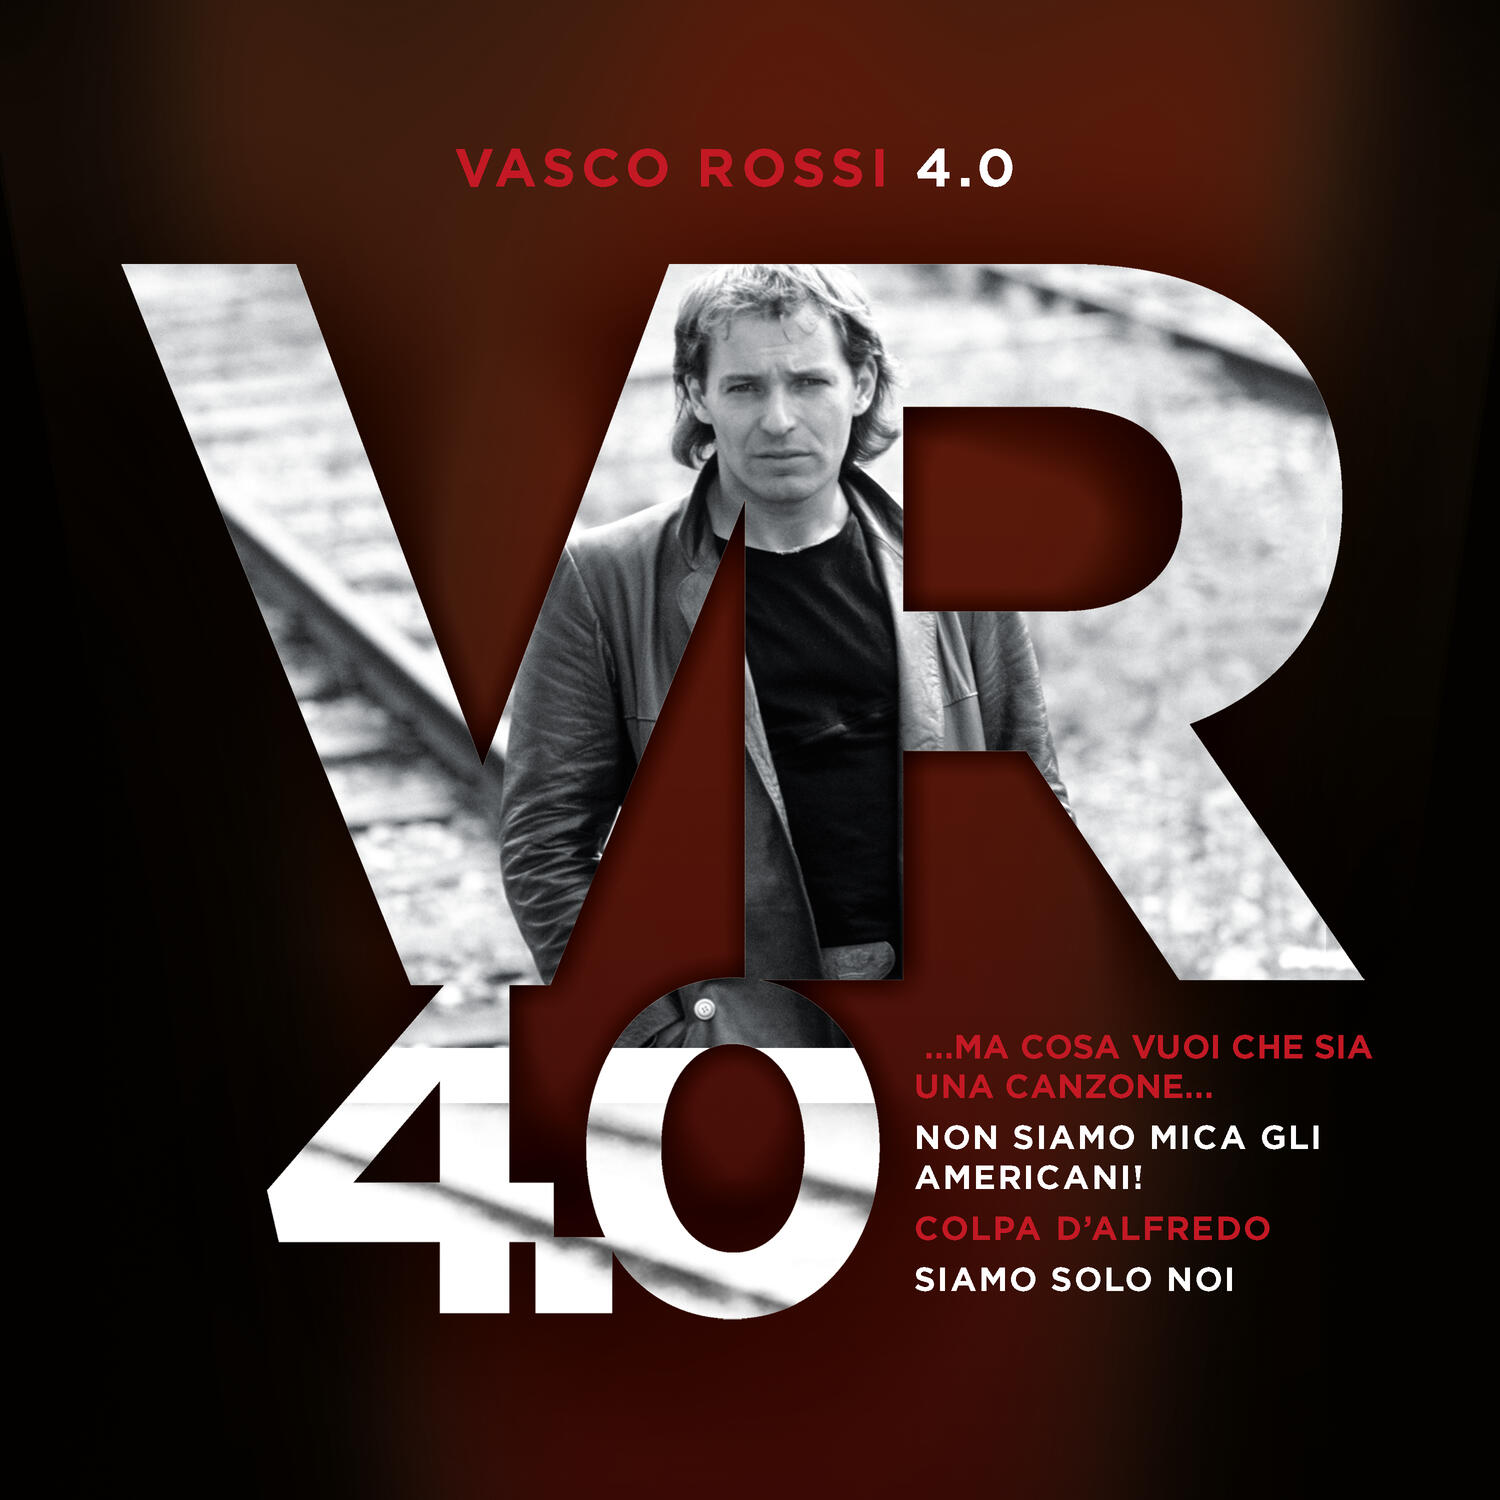 Primo Album Vasco Rossi Vasco Rossi Cd Dell Artista In Vendita Online